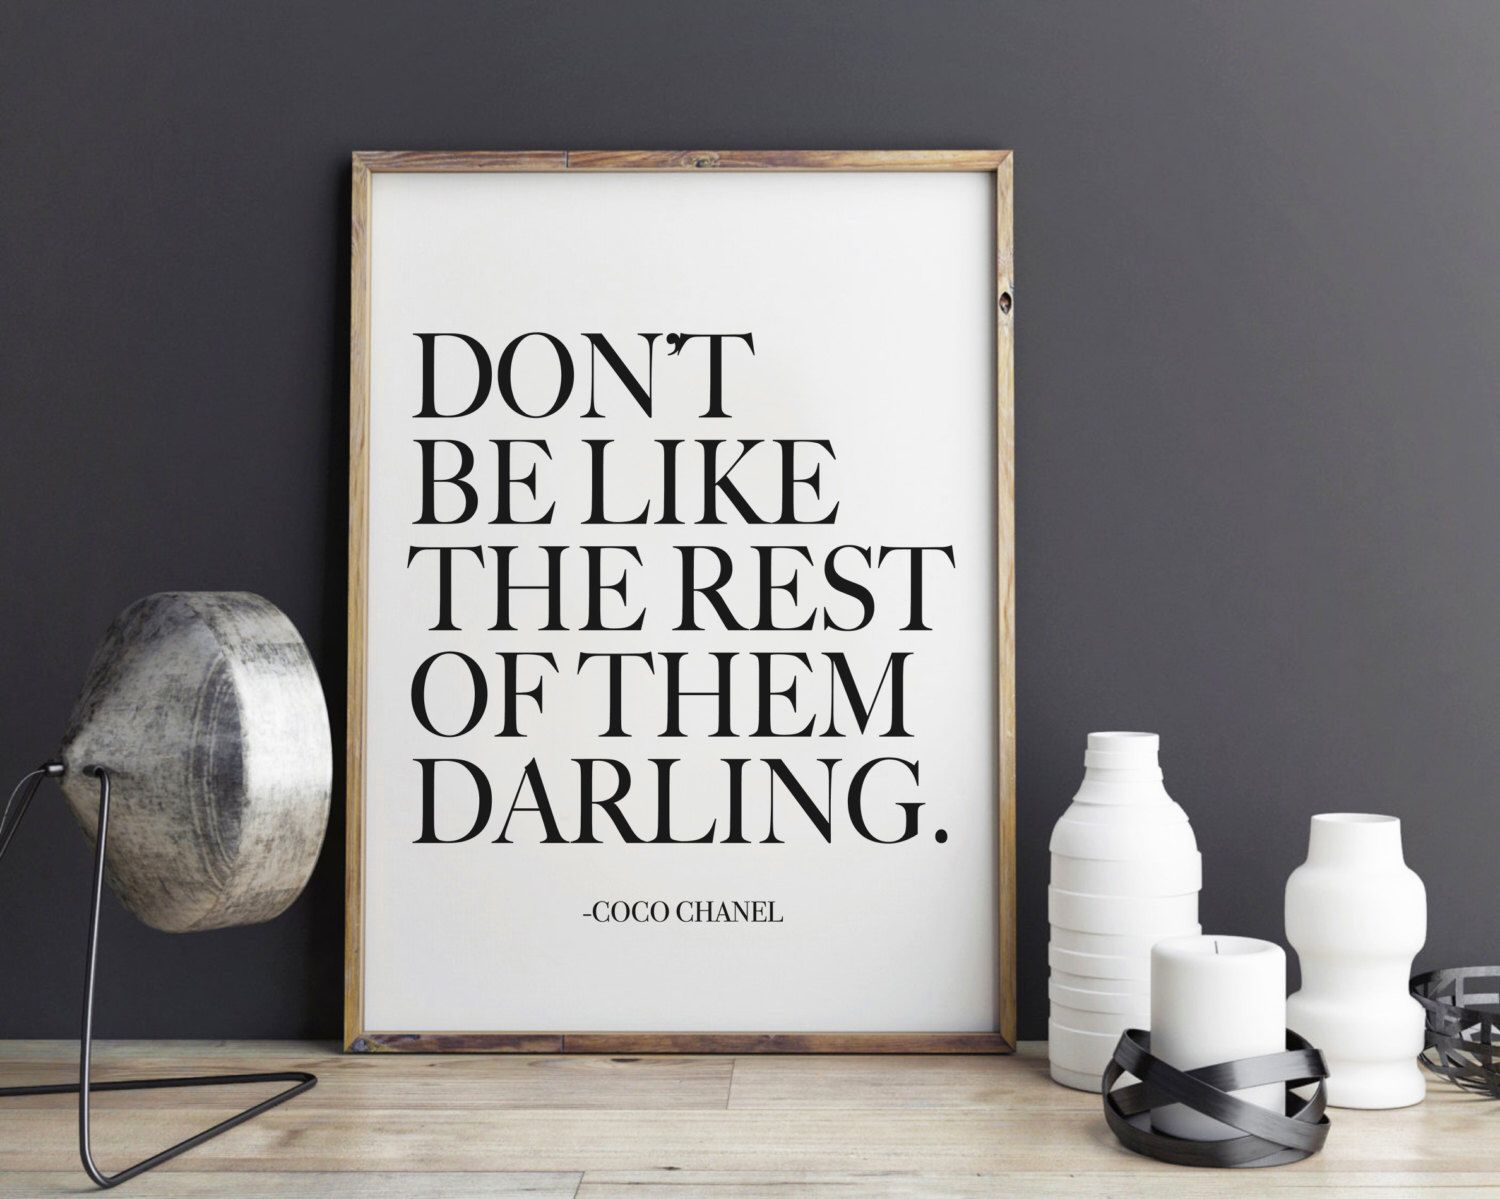 Darling coco chanel quote fashion print fashion art wall art darling coco chanel quote fashion print fashion art wall art illustration amipublicfo Gallery